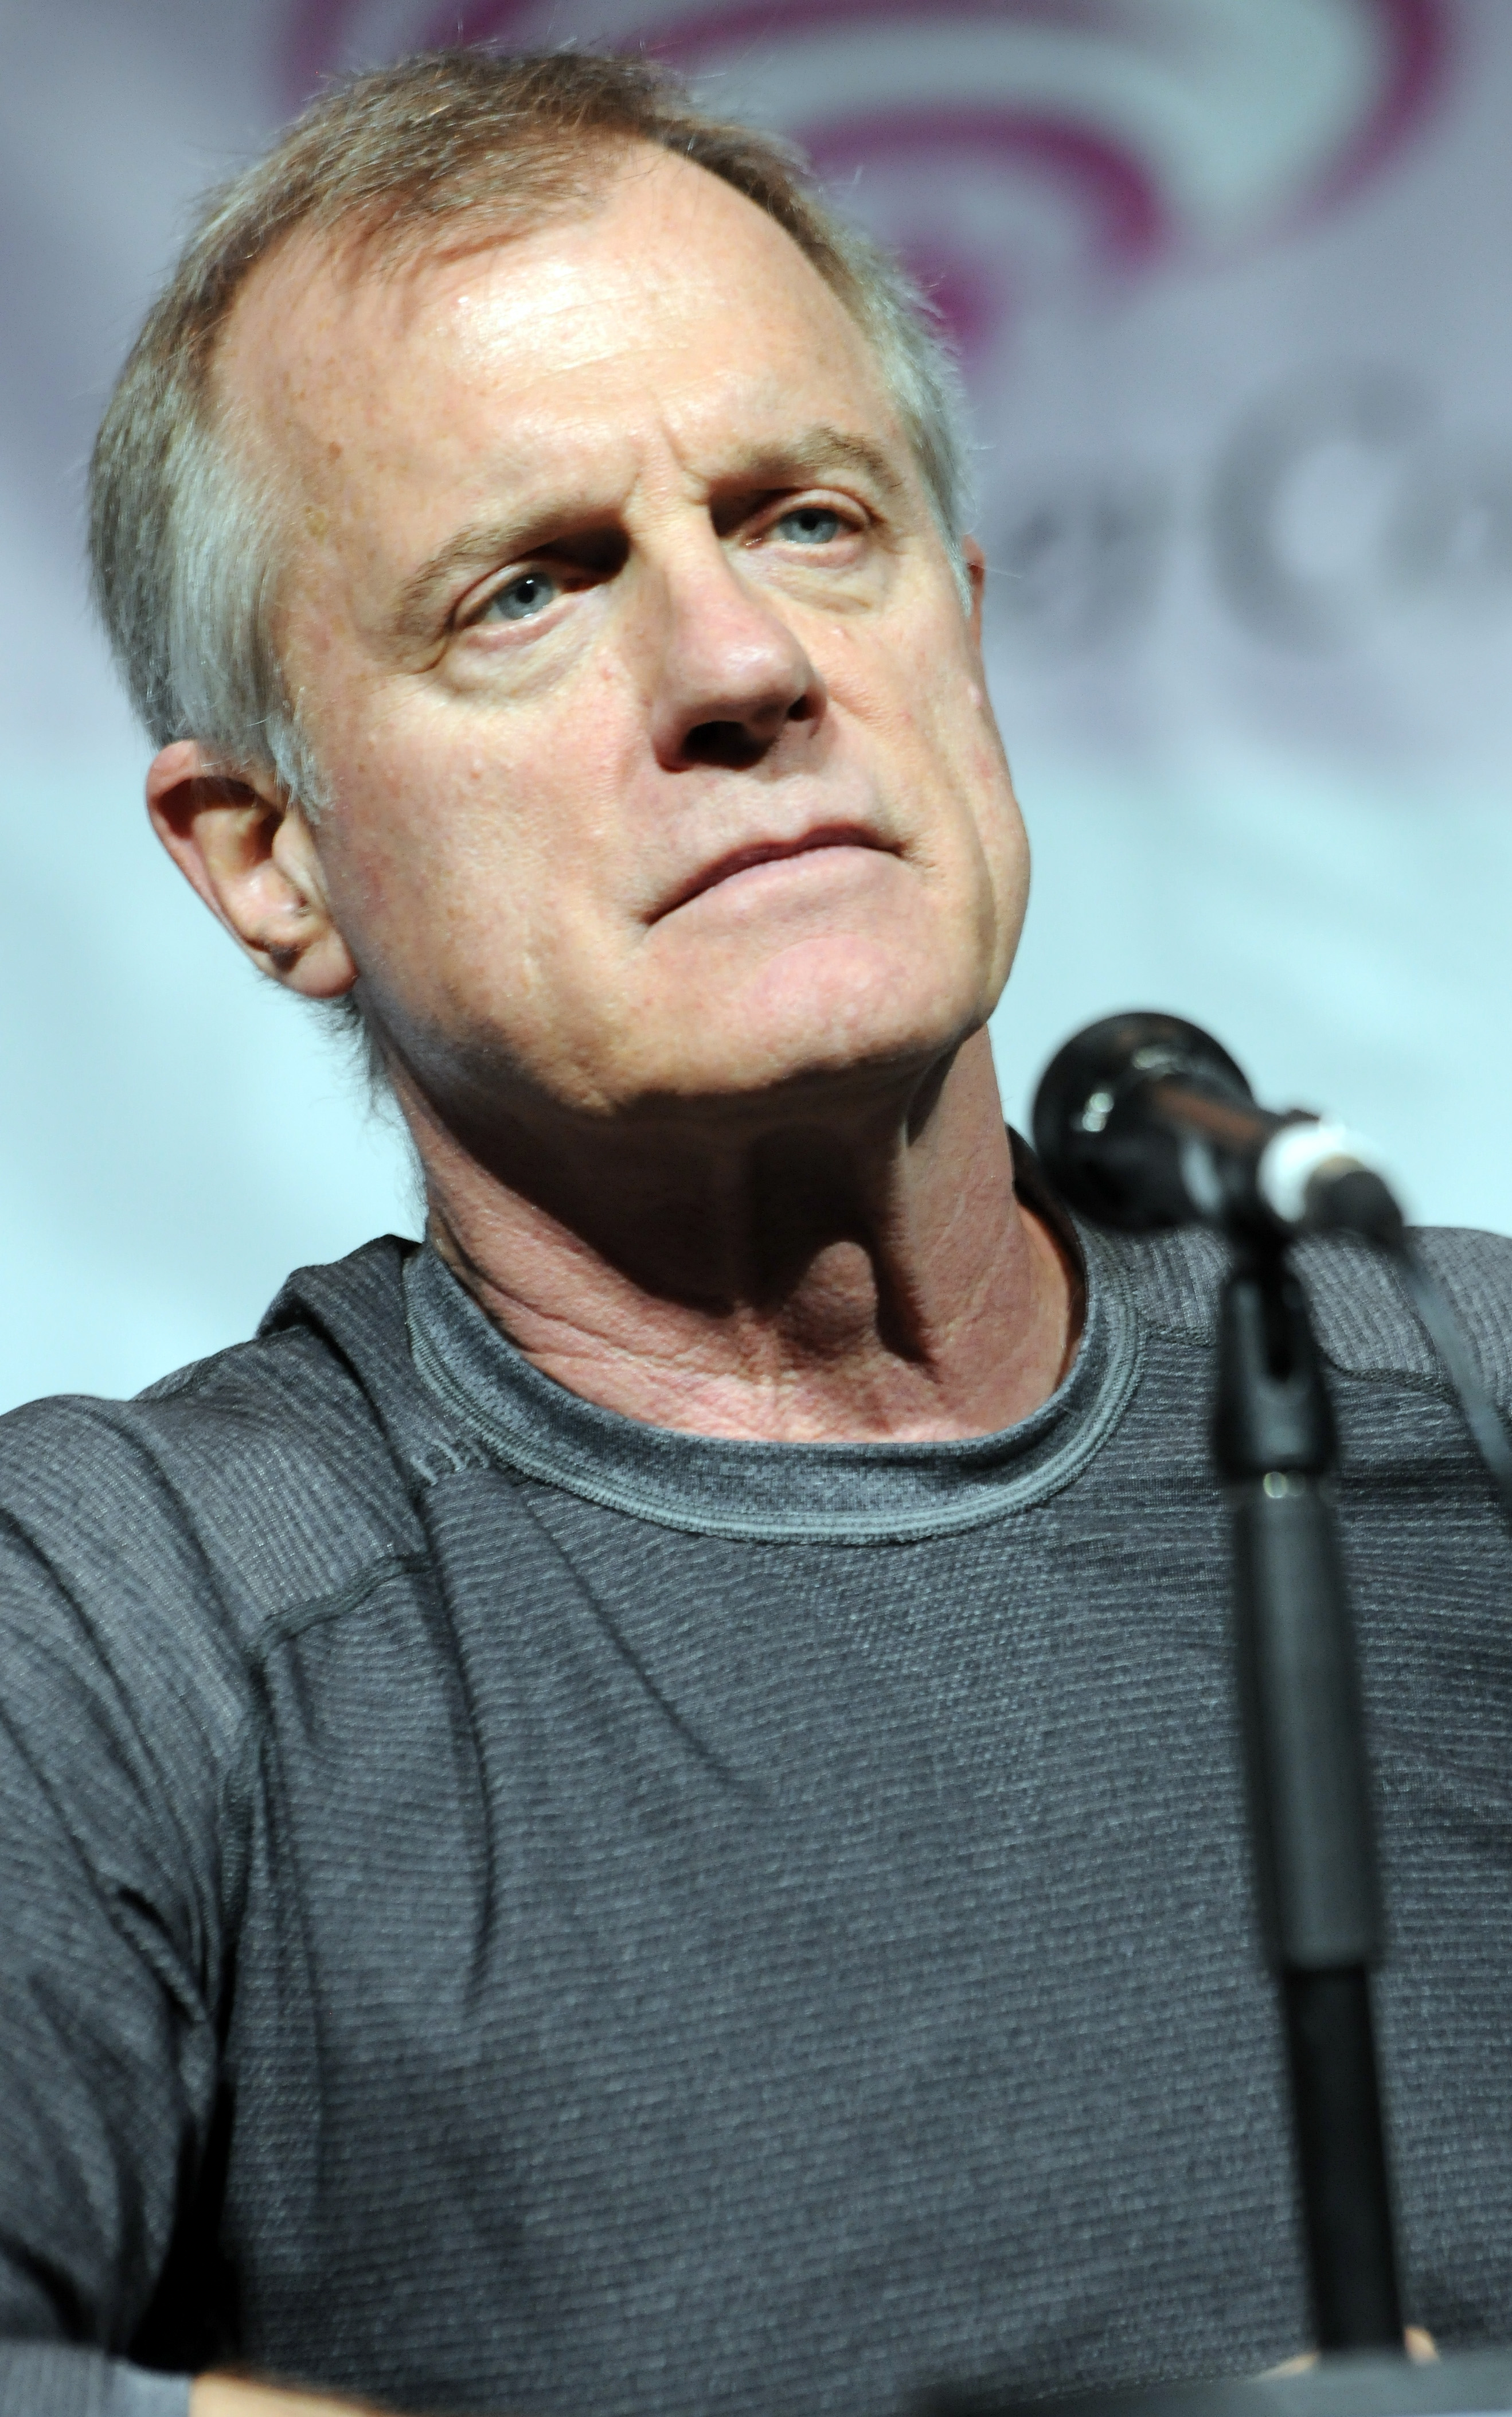 Actor Stephen Collins promotes NBC's  Revolution  at WonderCon Anaheim 2014 - Day 1 held at Anaheim Convention Center on April 18, 2014 in Anaheim, California.